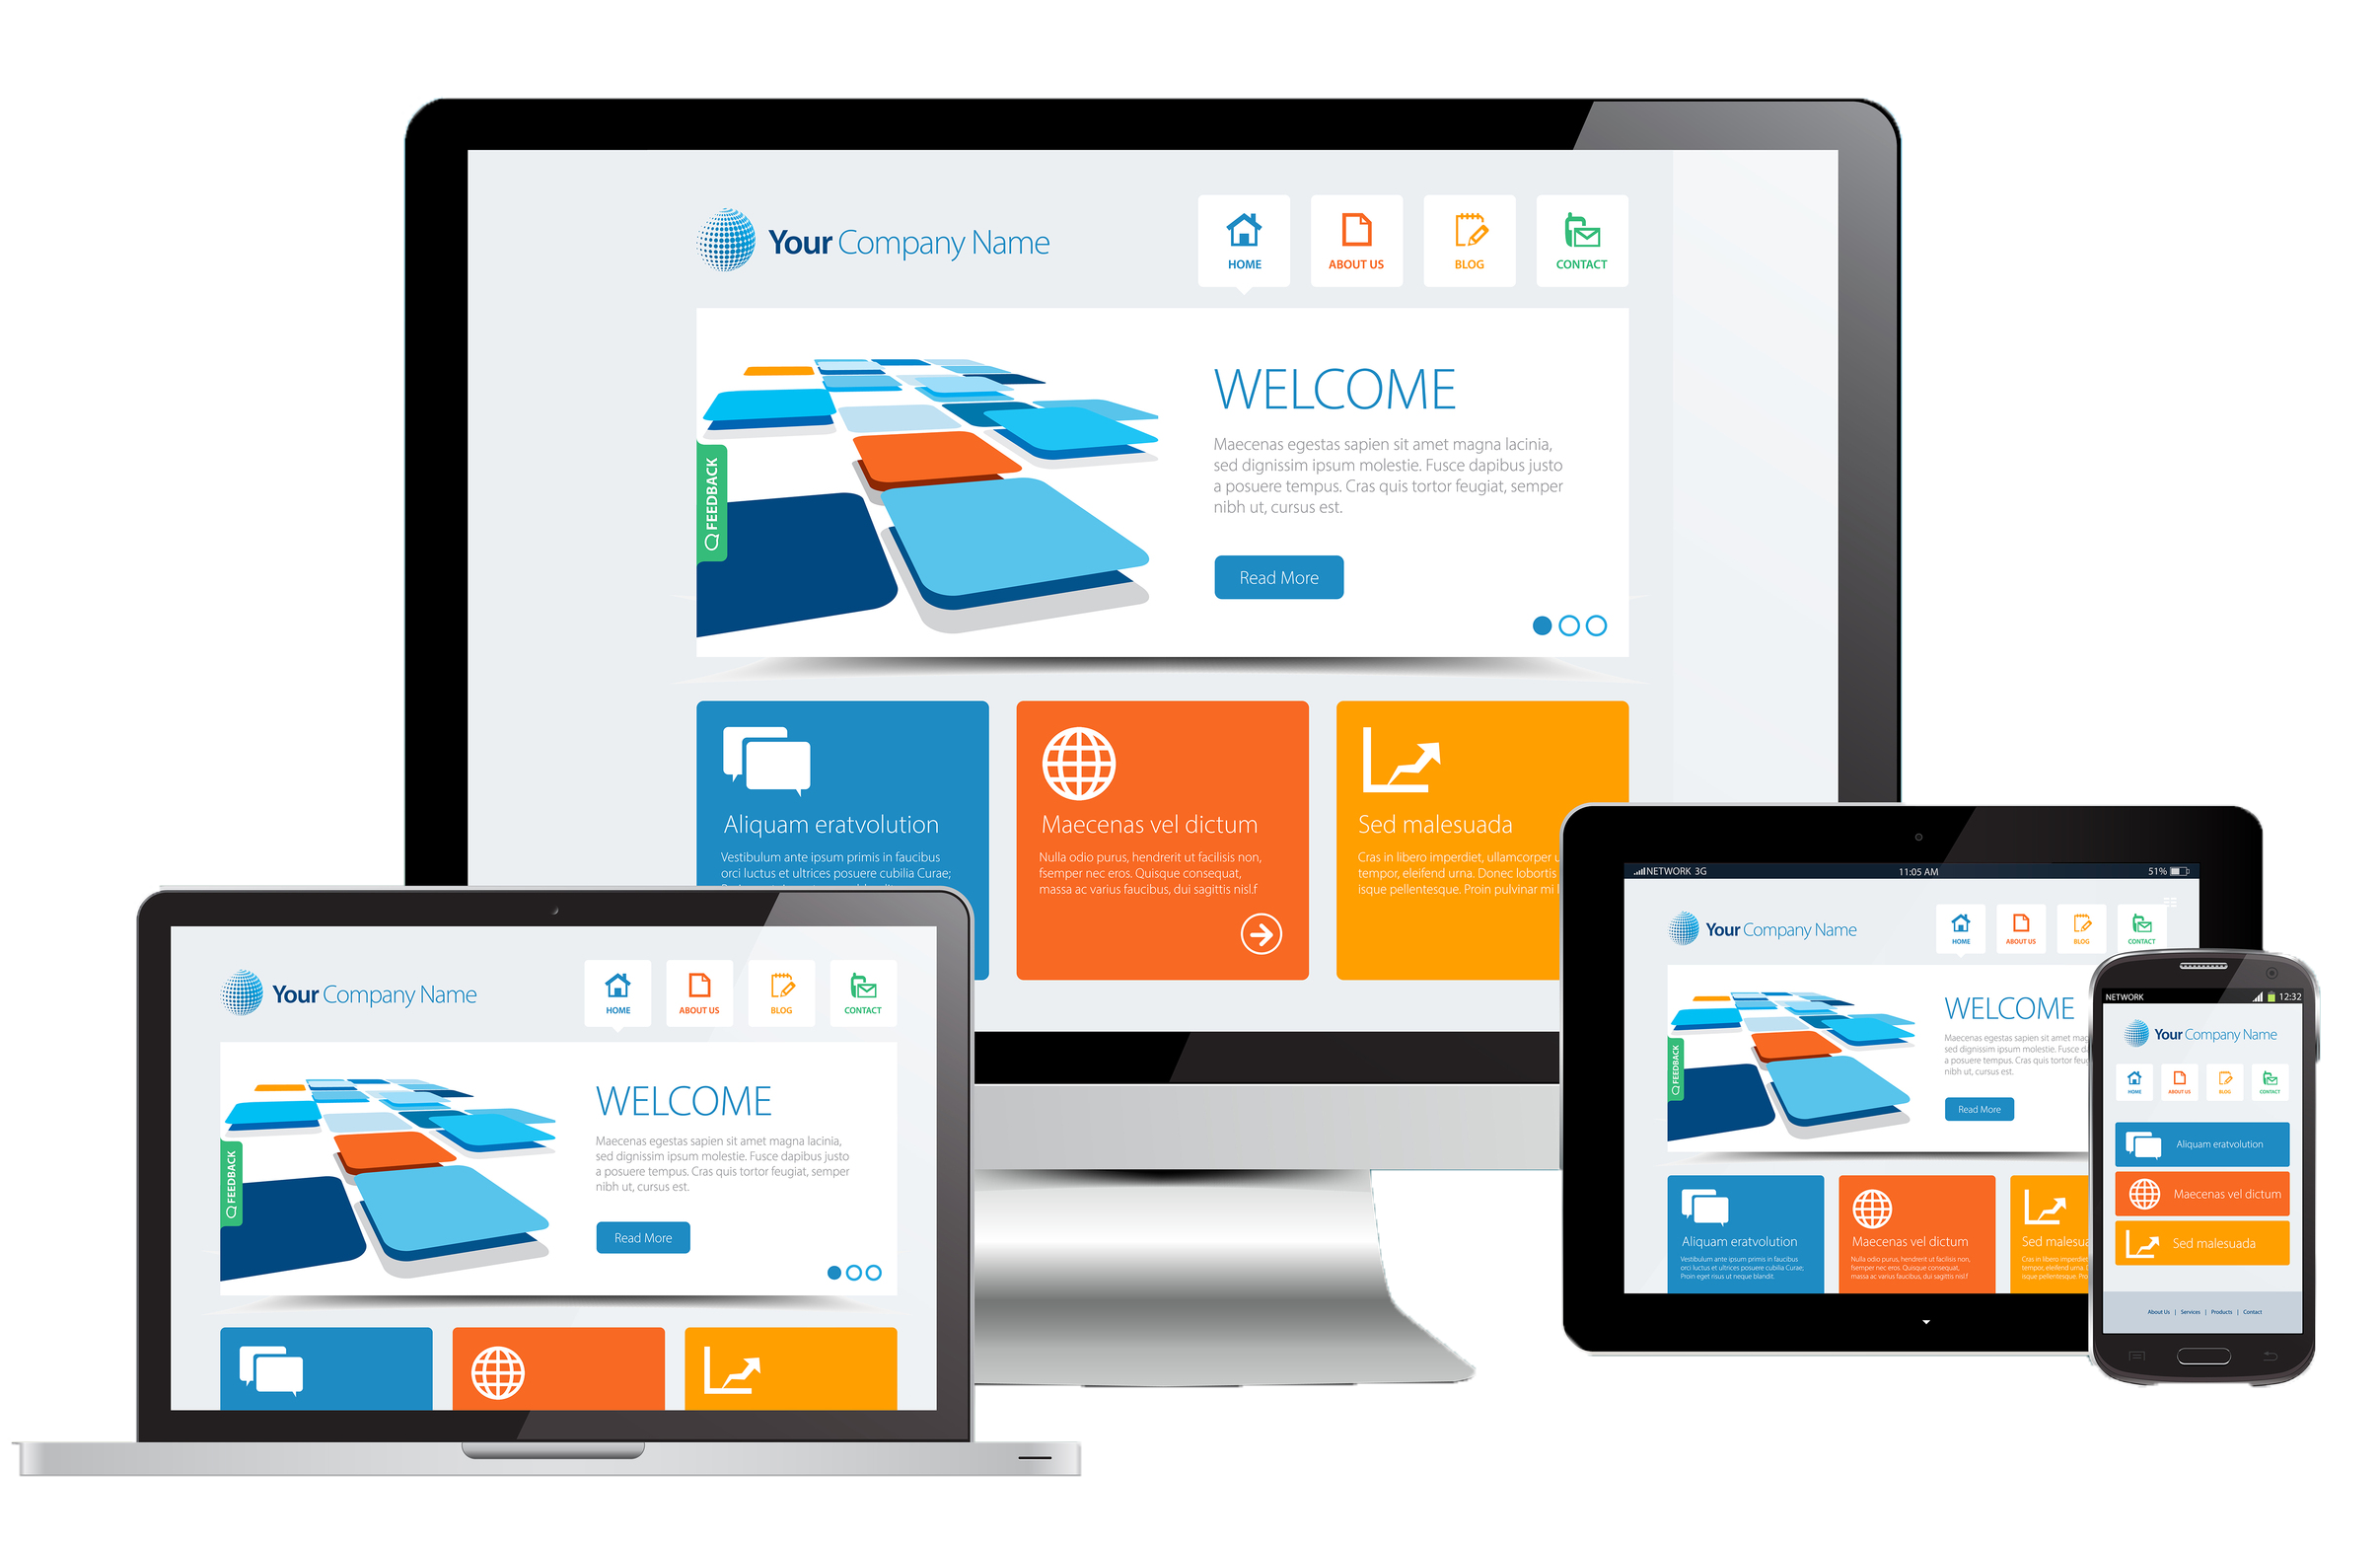 4 top benefits of using professional web design services for your business